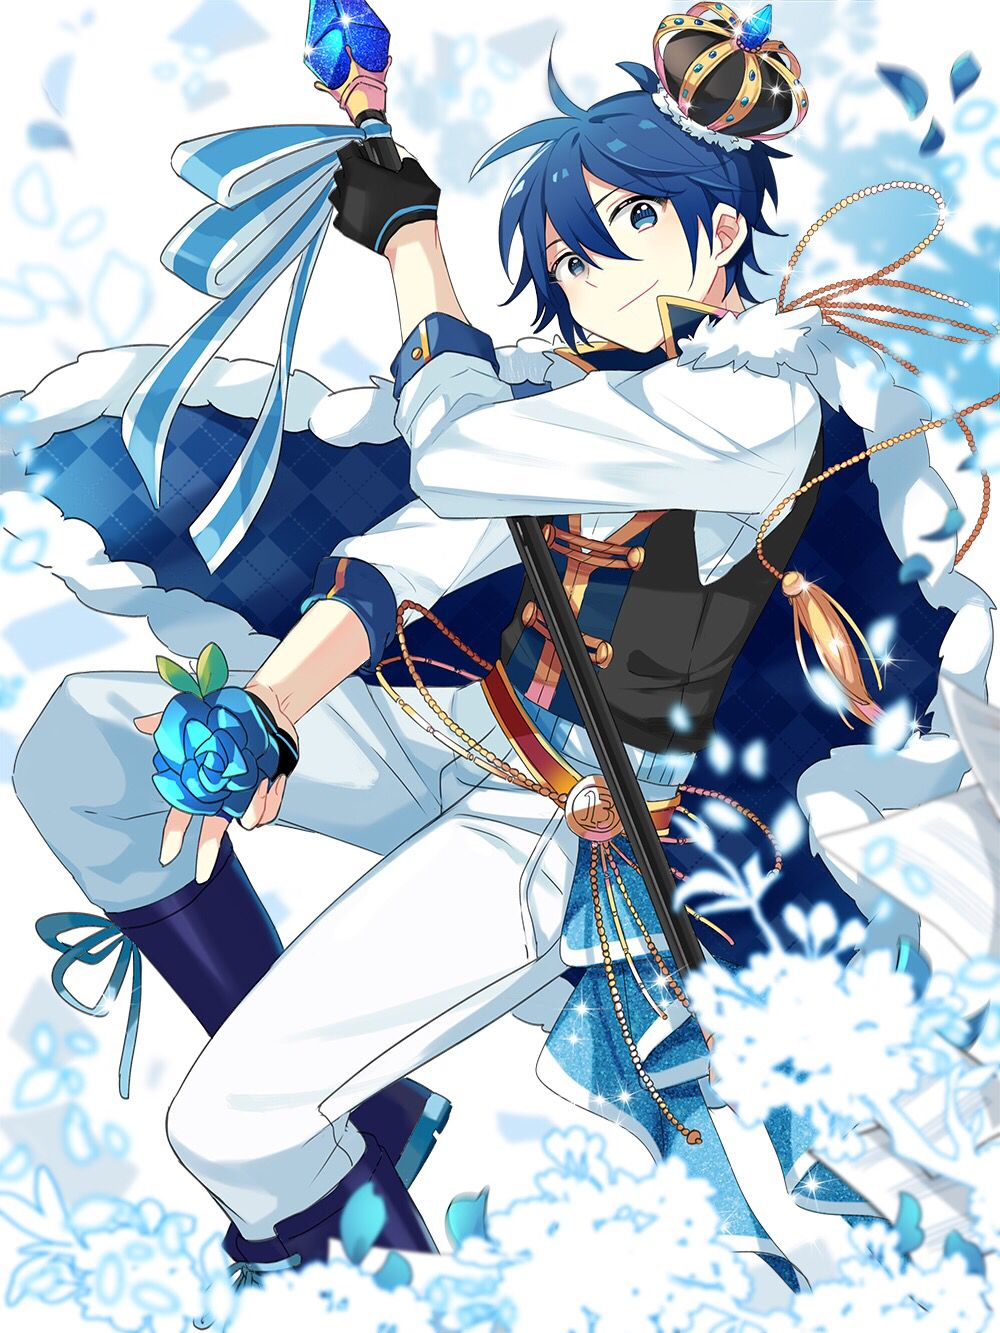 King Kaito Vocaloid kaito, Blue hair anime boy, Anime boy